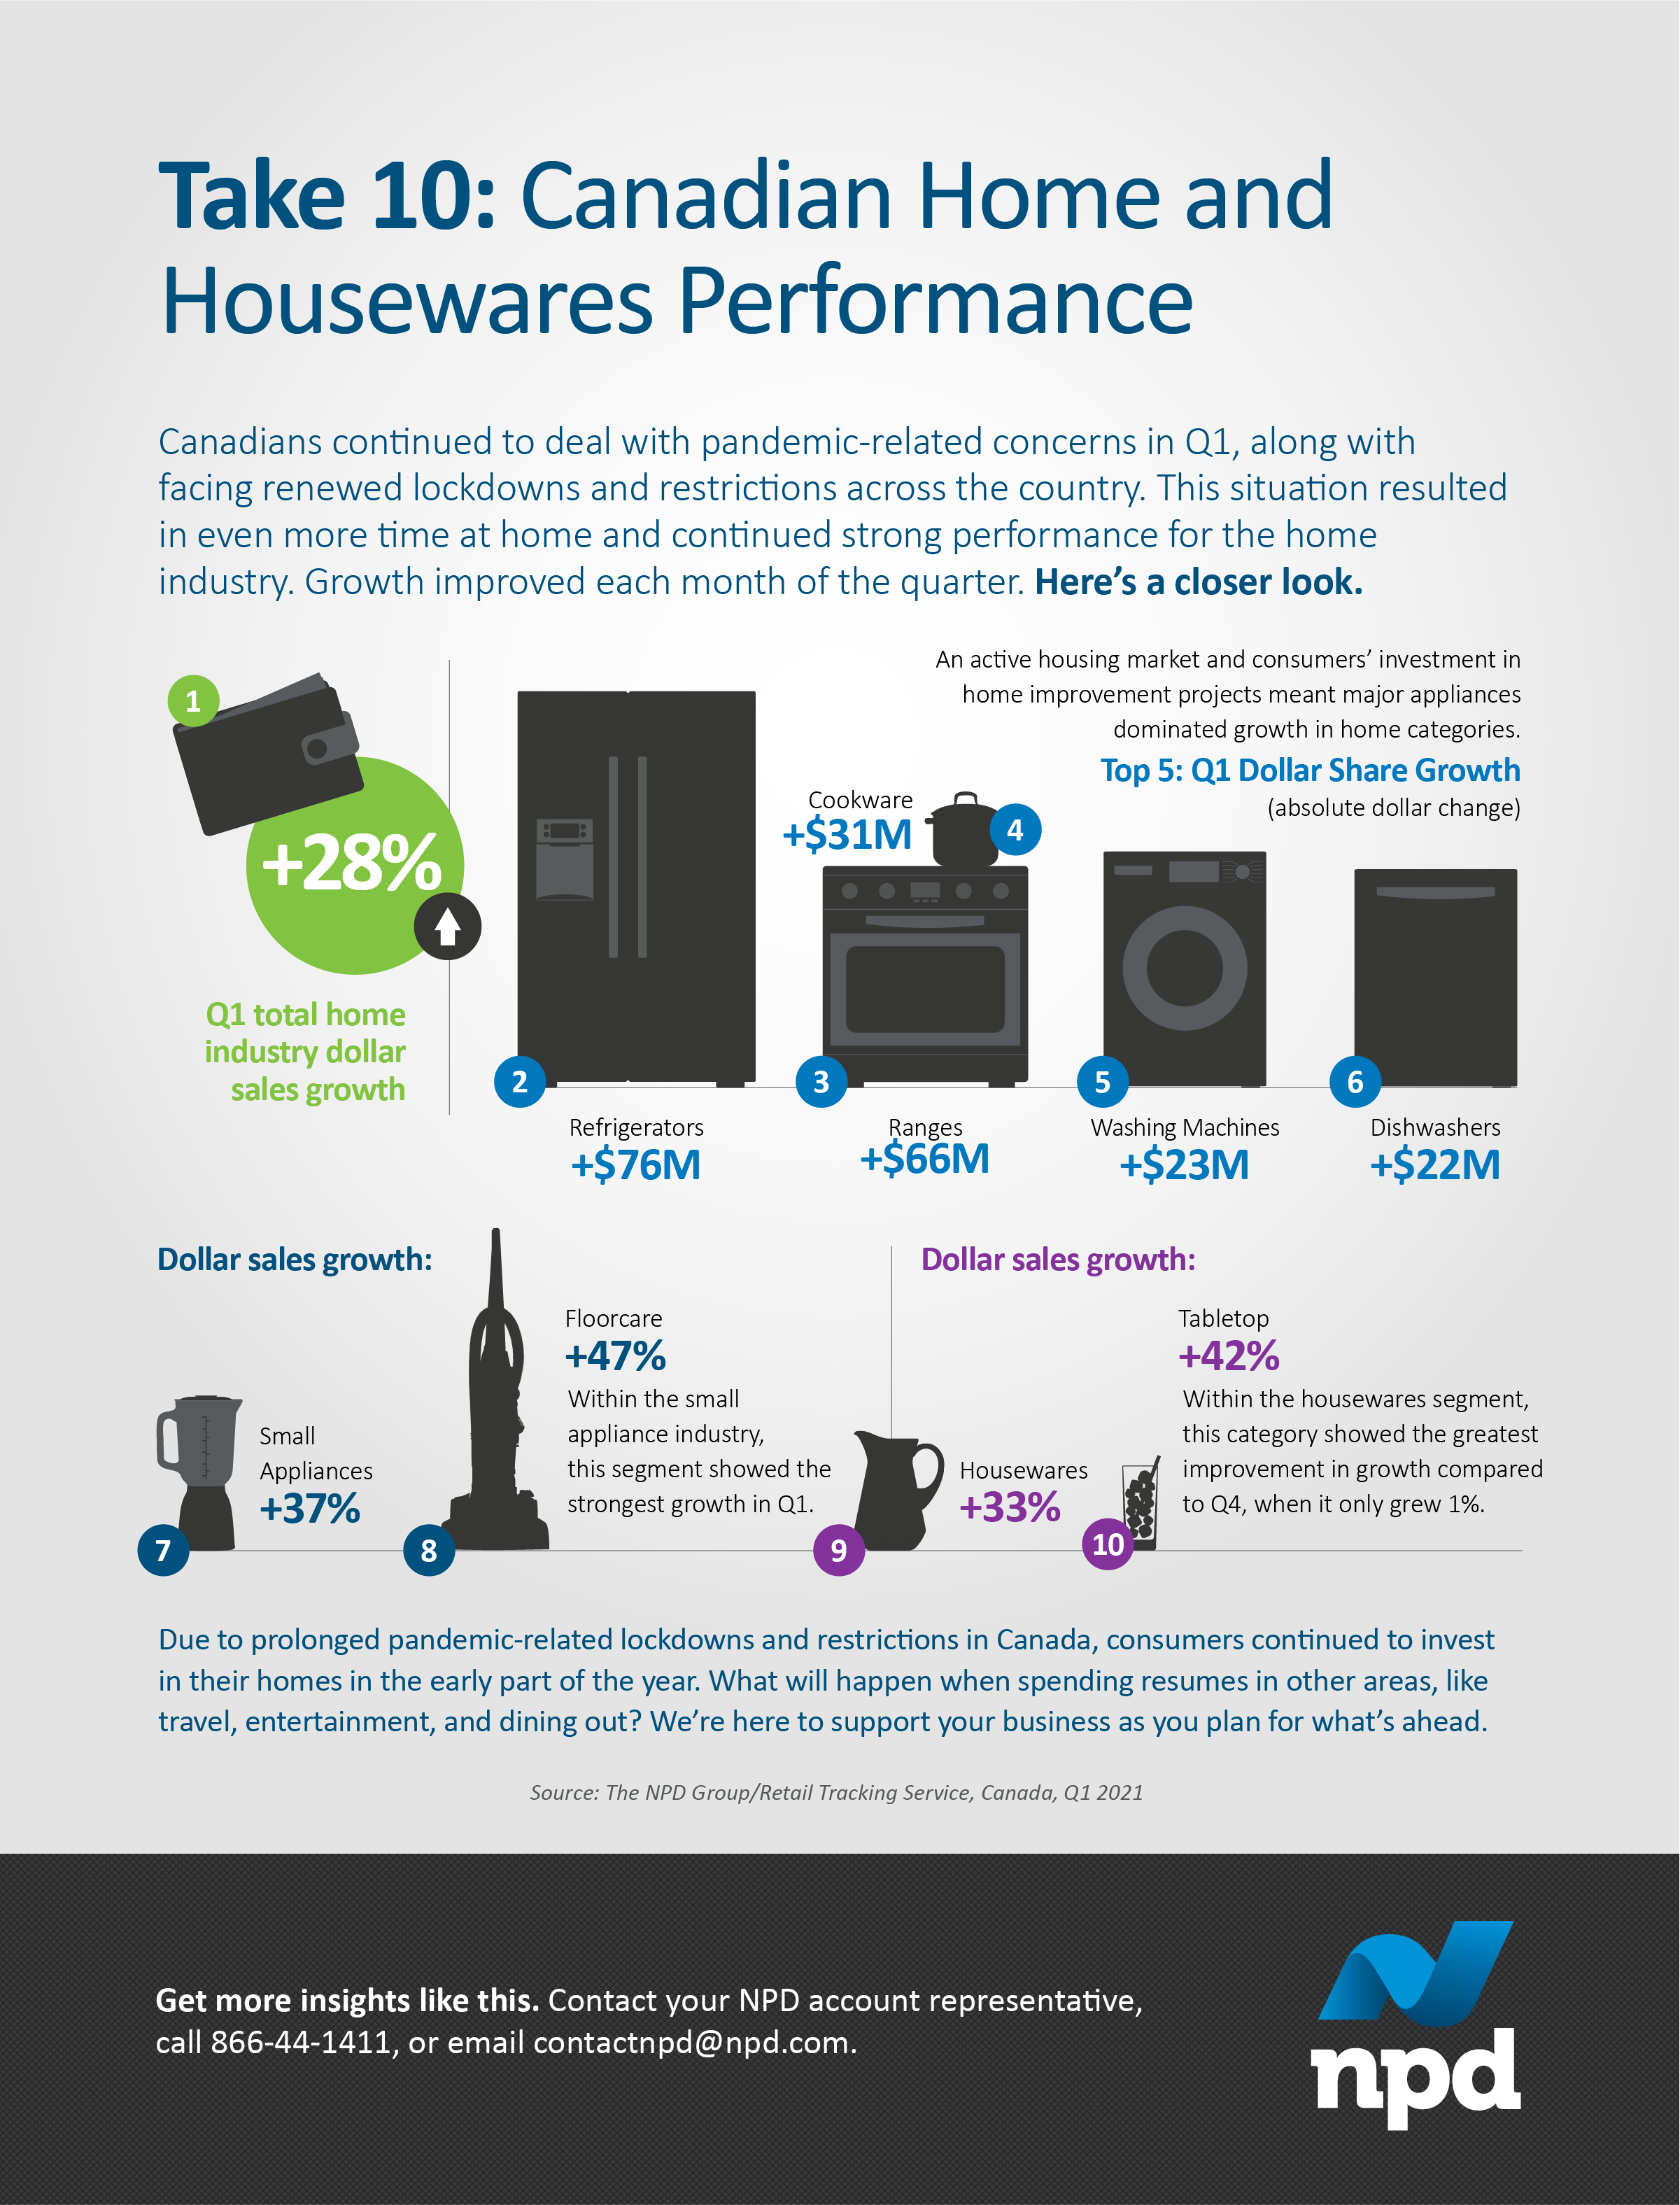 An active housing market and investment in home improvement projects meant major appliances dominated Q1 growth in the home categories. Other segments like floorcare, kitchen appliances, and cookware also benefited from renewed lockdowns across Canada.